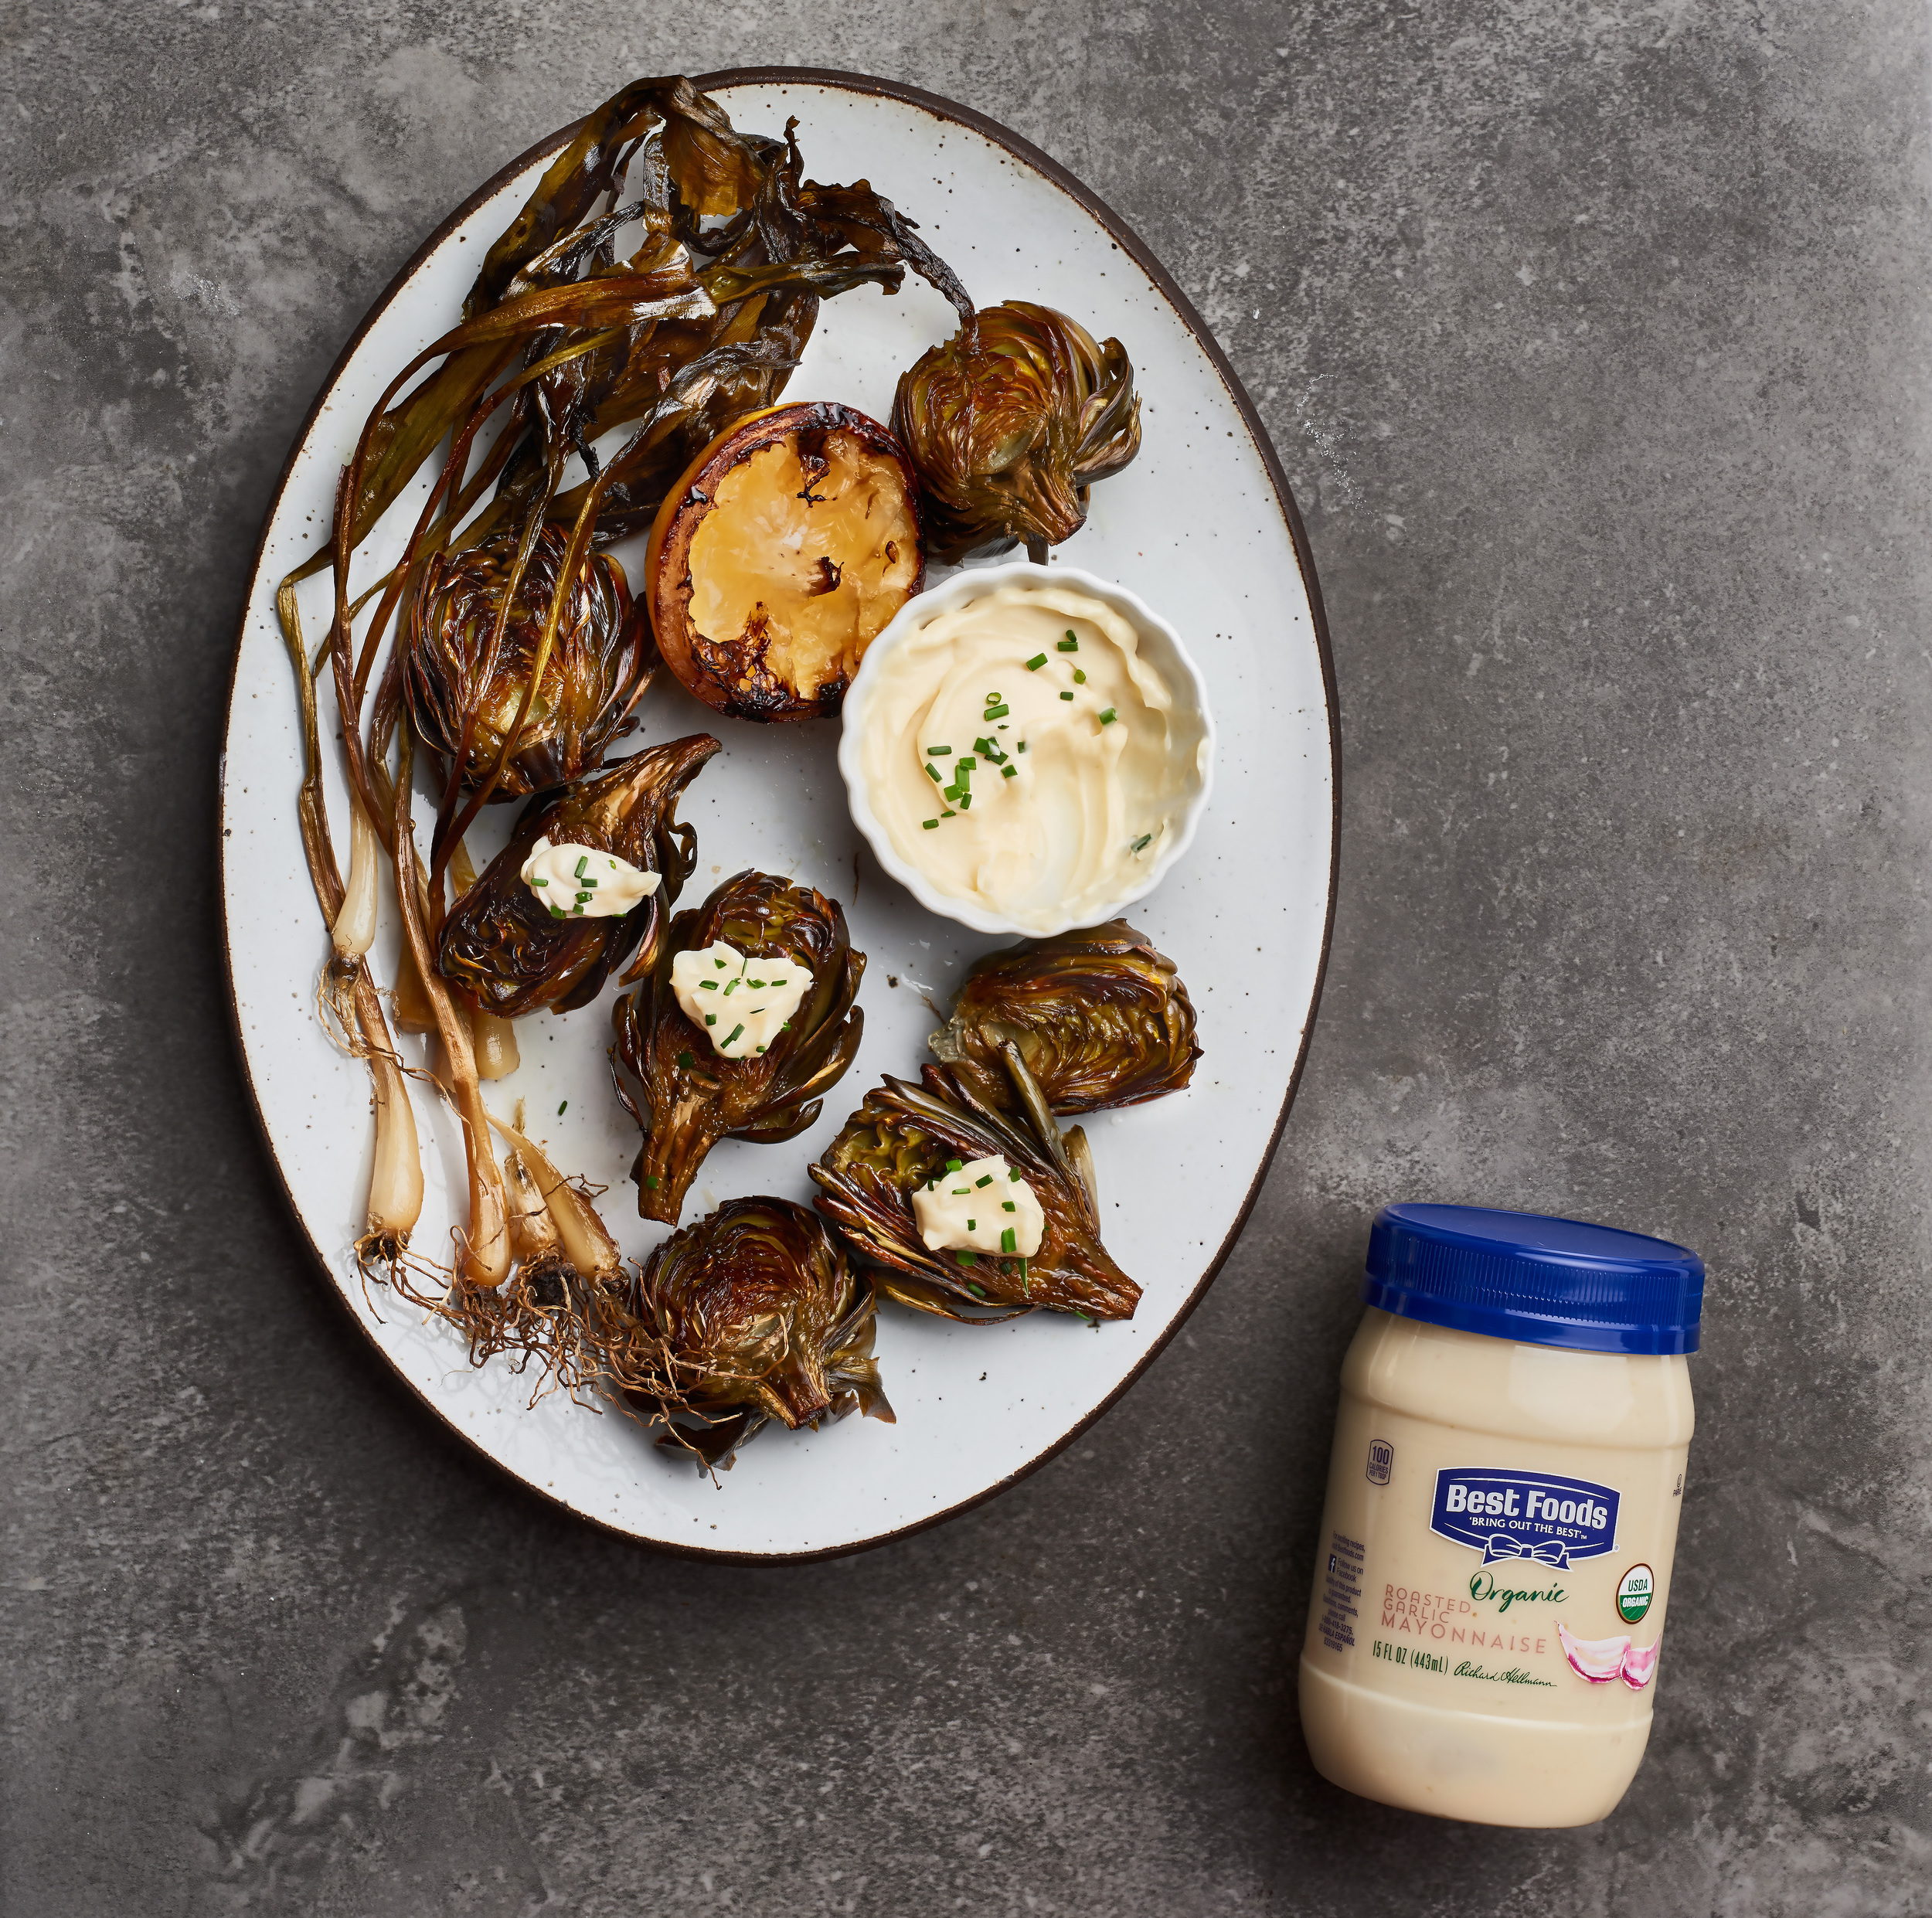 Roasted Artichokes with Whipped Shallot-Garlic Mayonnaise